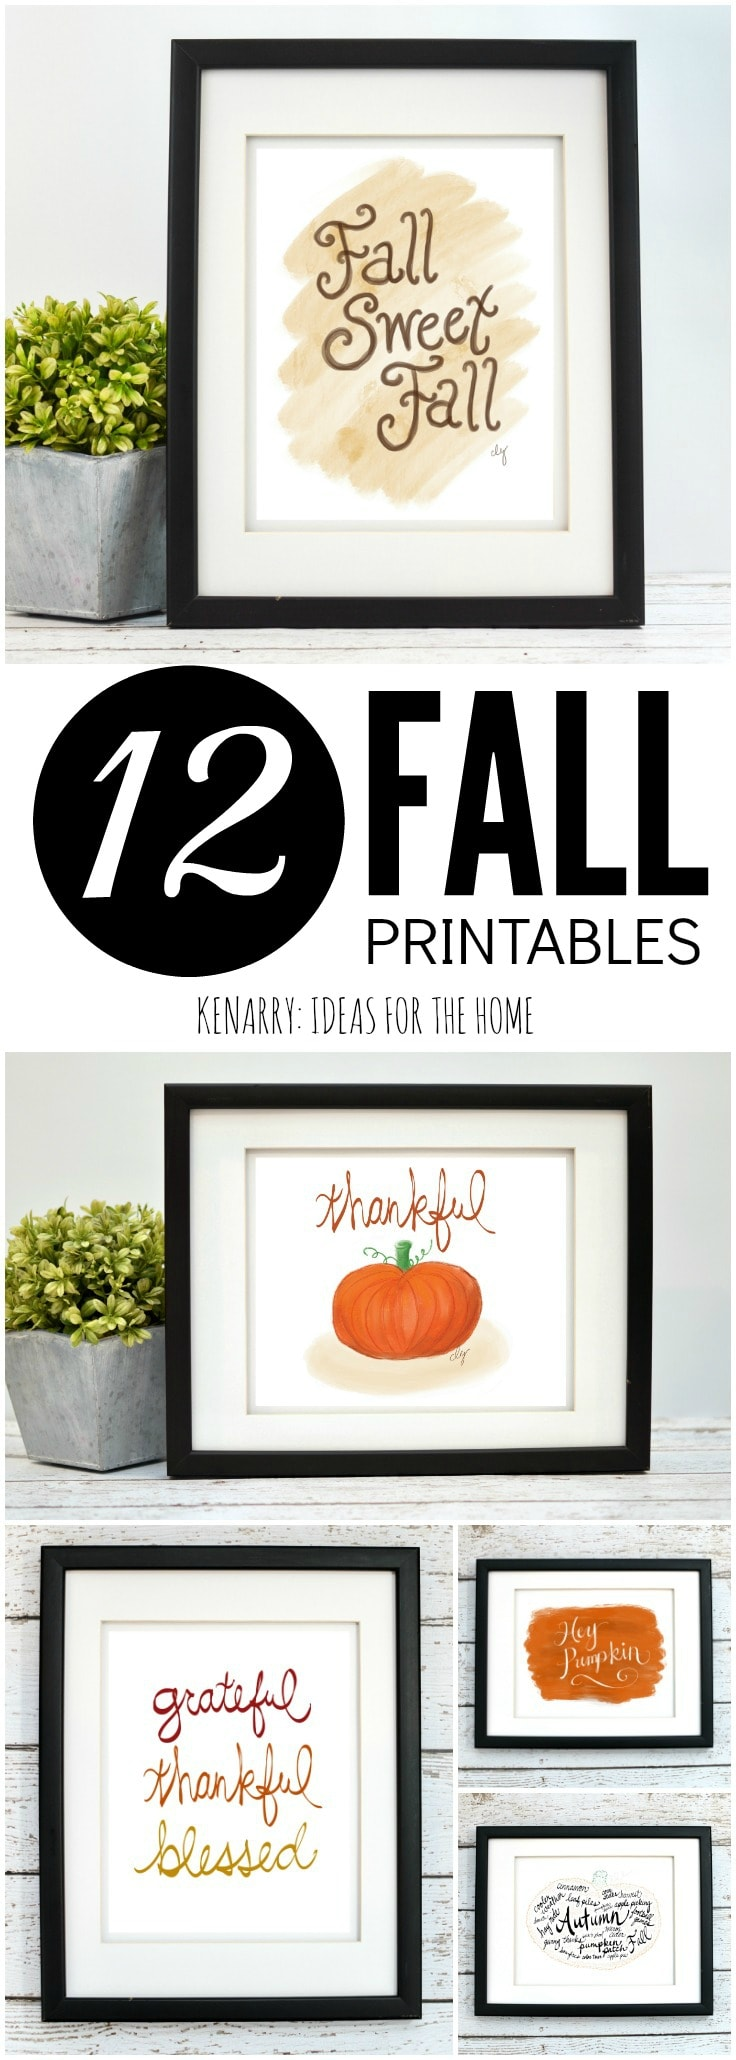 The fall art collection from Ideas for the Home by Kenarry® is available as digital printable art on Etsy. Printables are a great way to decorate the walls of your home on a budget for autumn, Halloween and Thanksgiving.